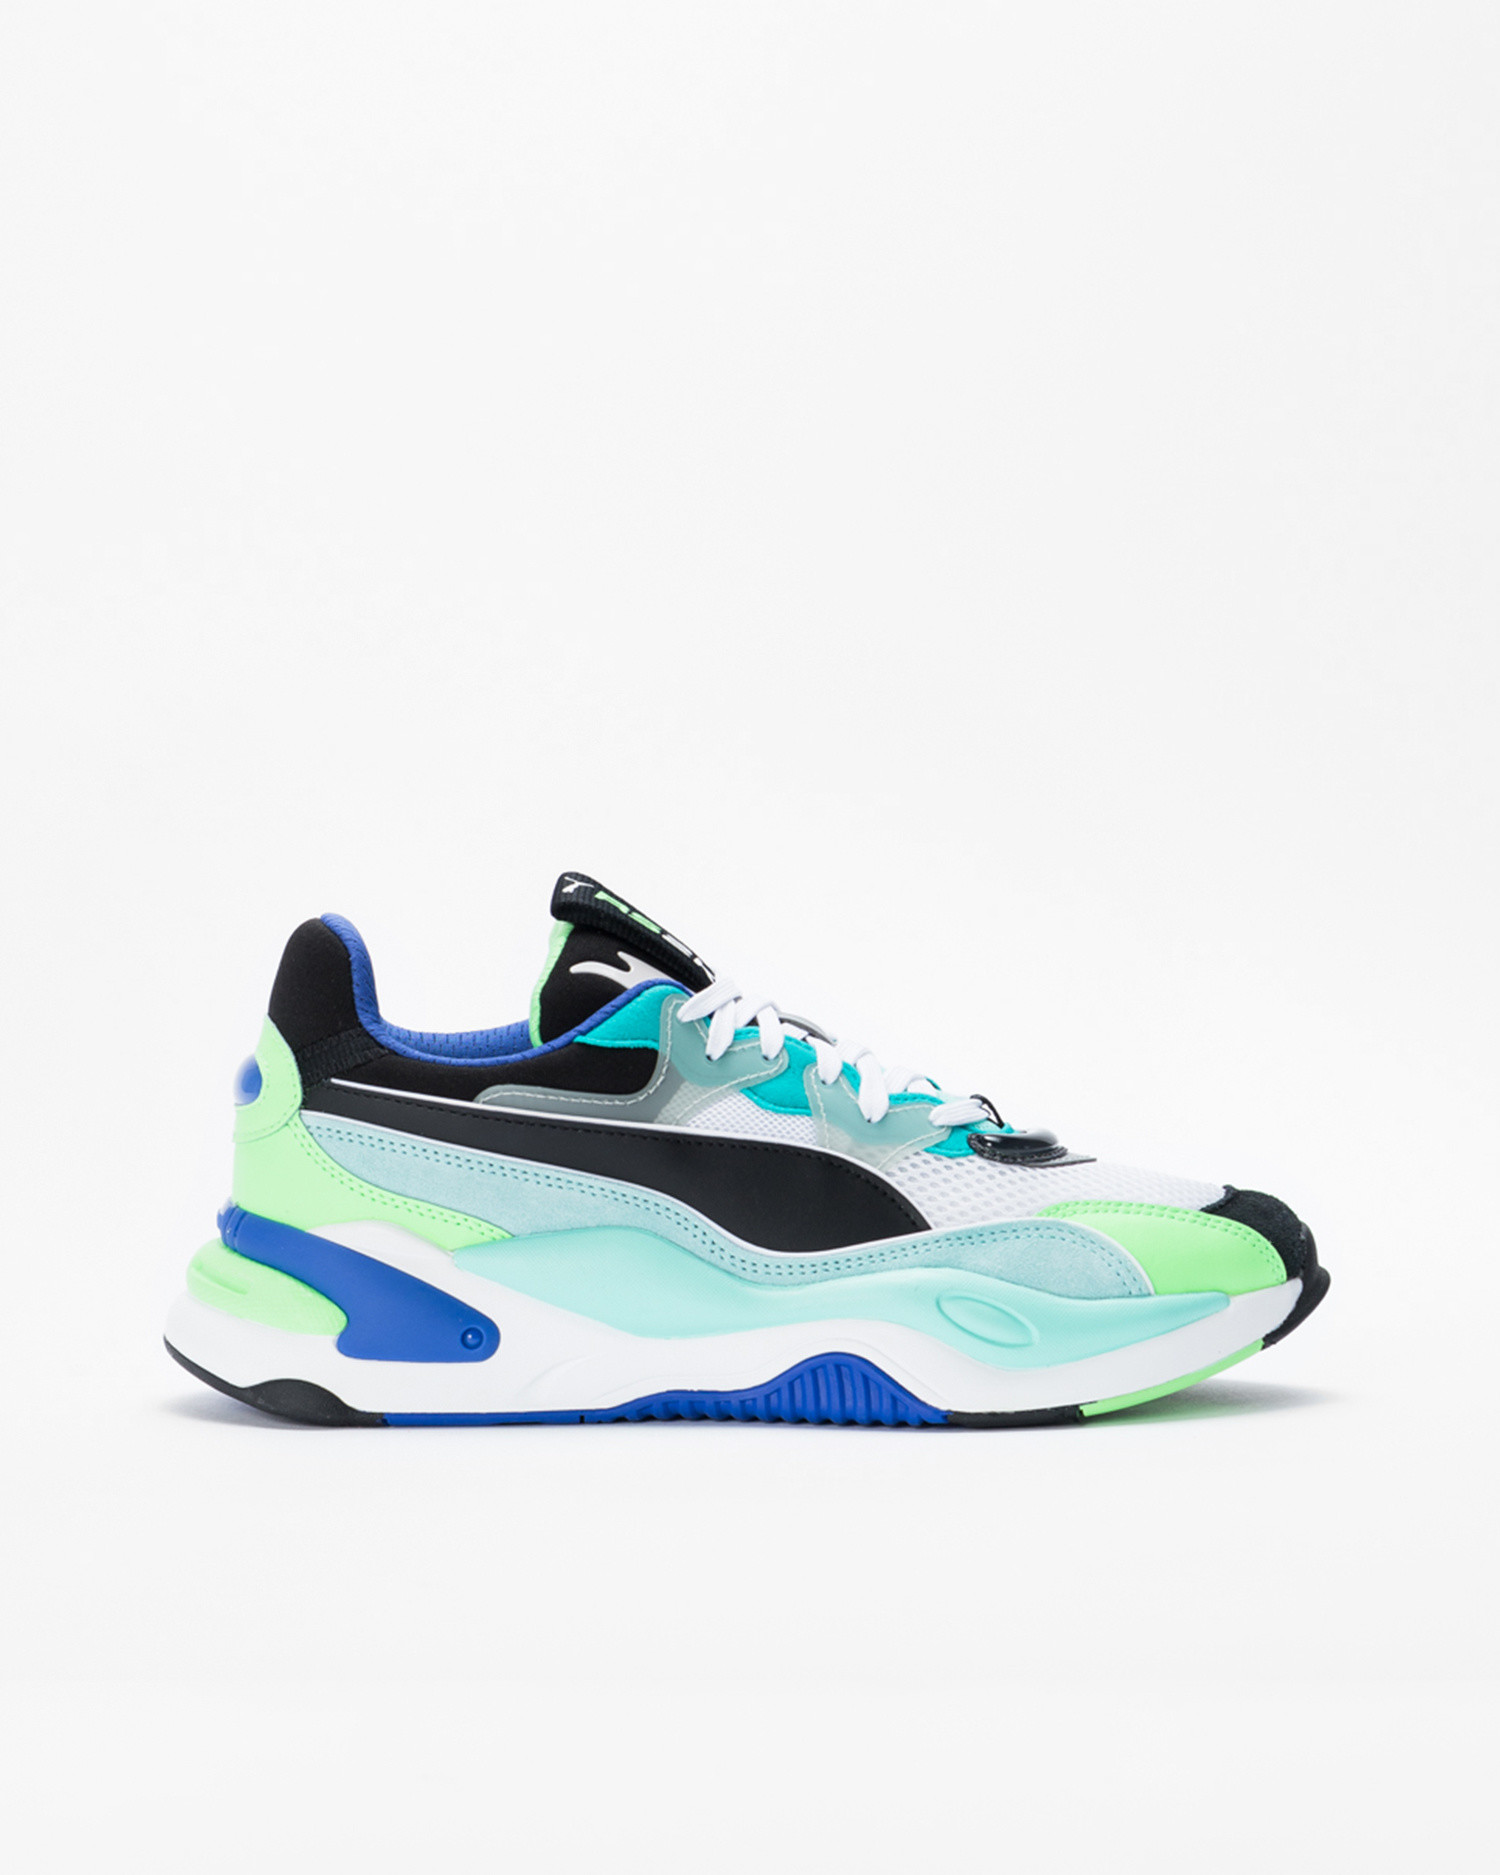 Puma RS-2K Internet Exploring/Puma Black-Aruba Blue